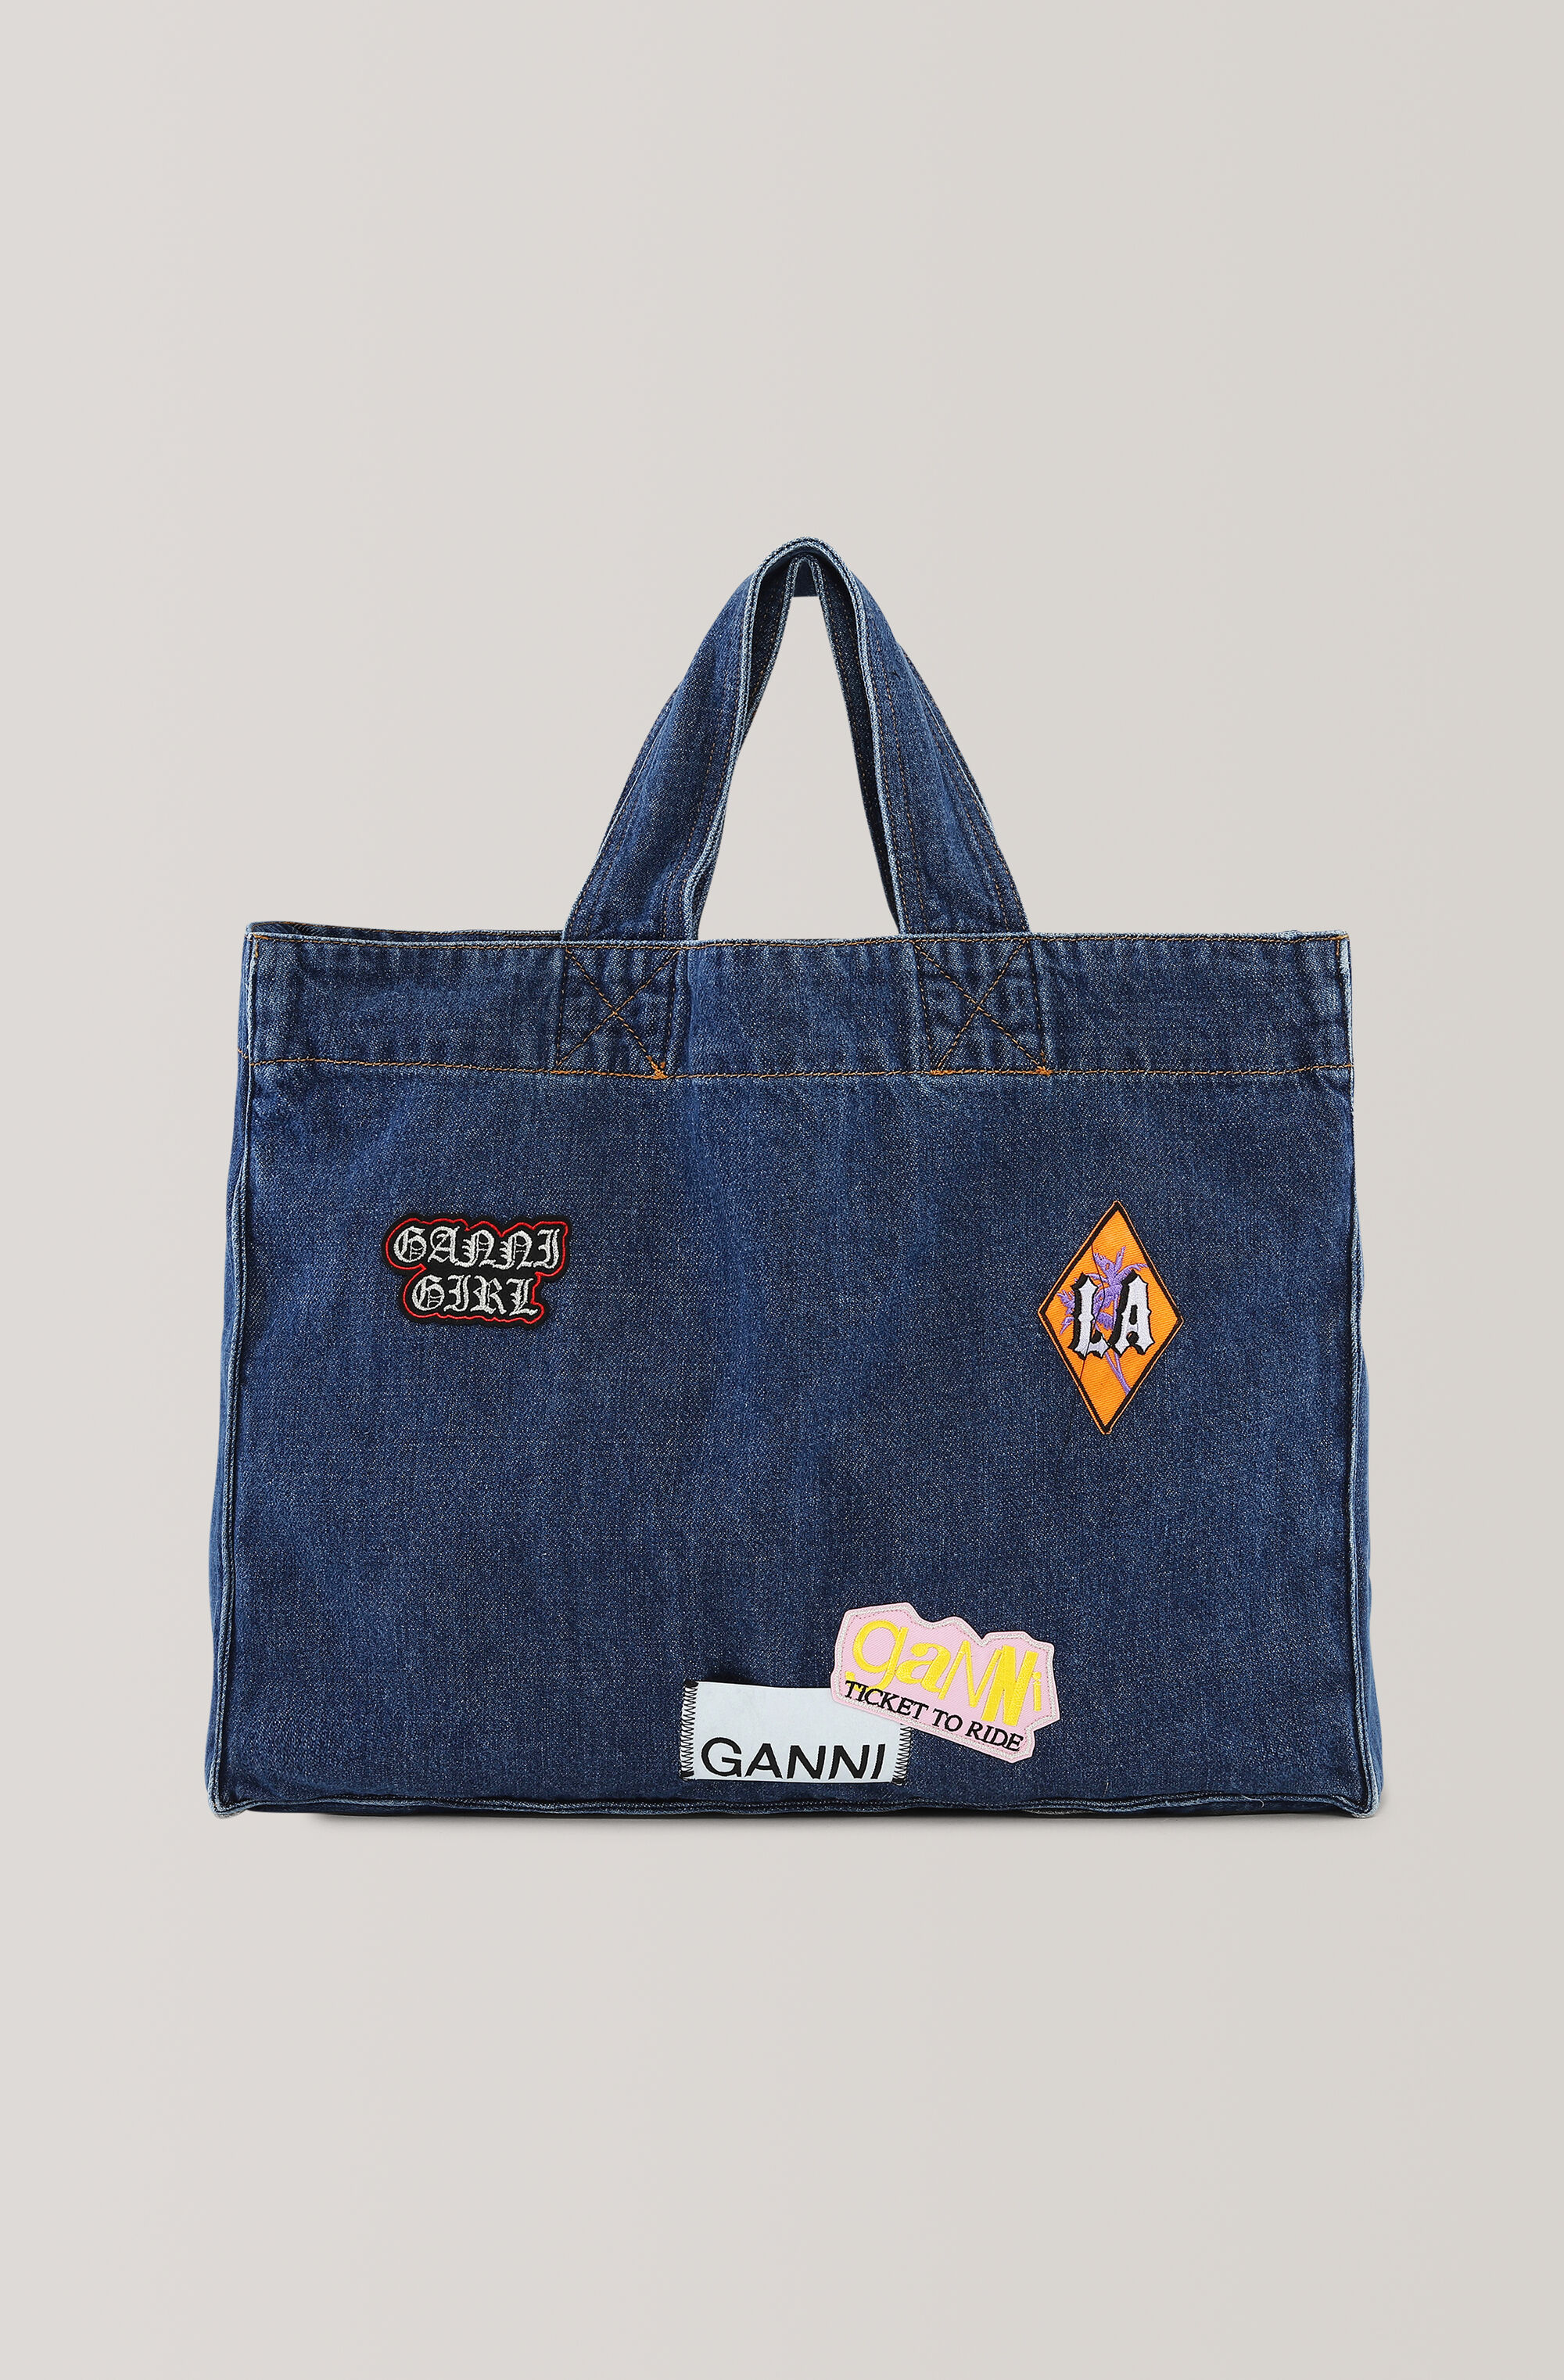 Ganni West Tote Bag, Medium Dark Denim, packshots